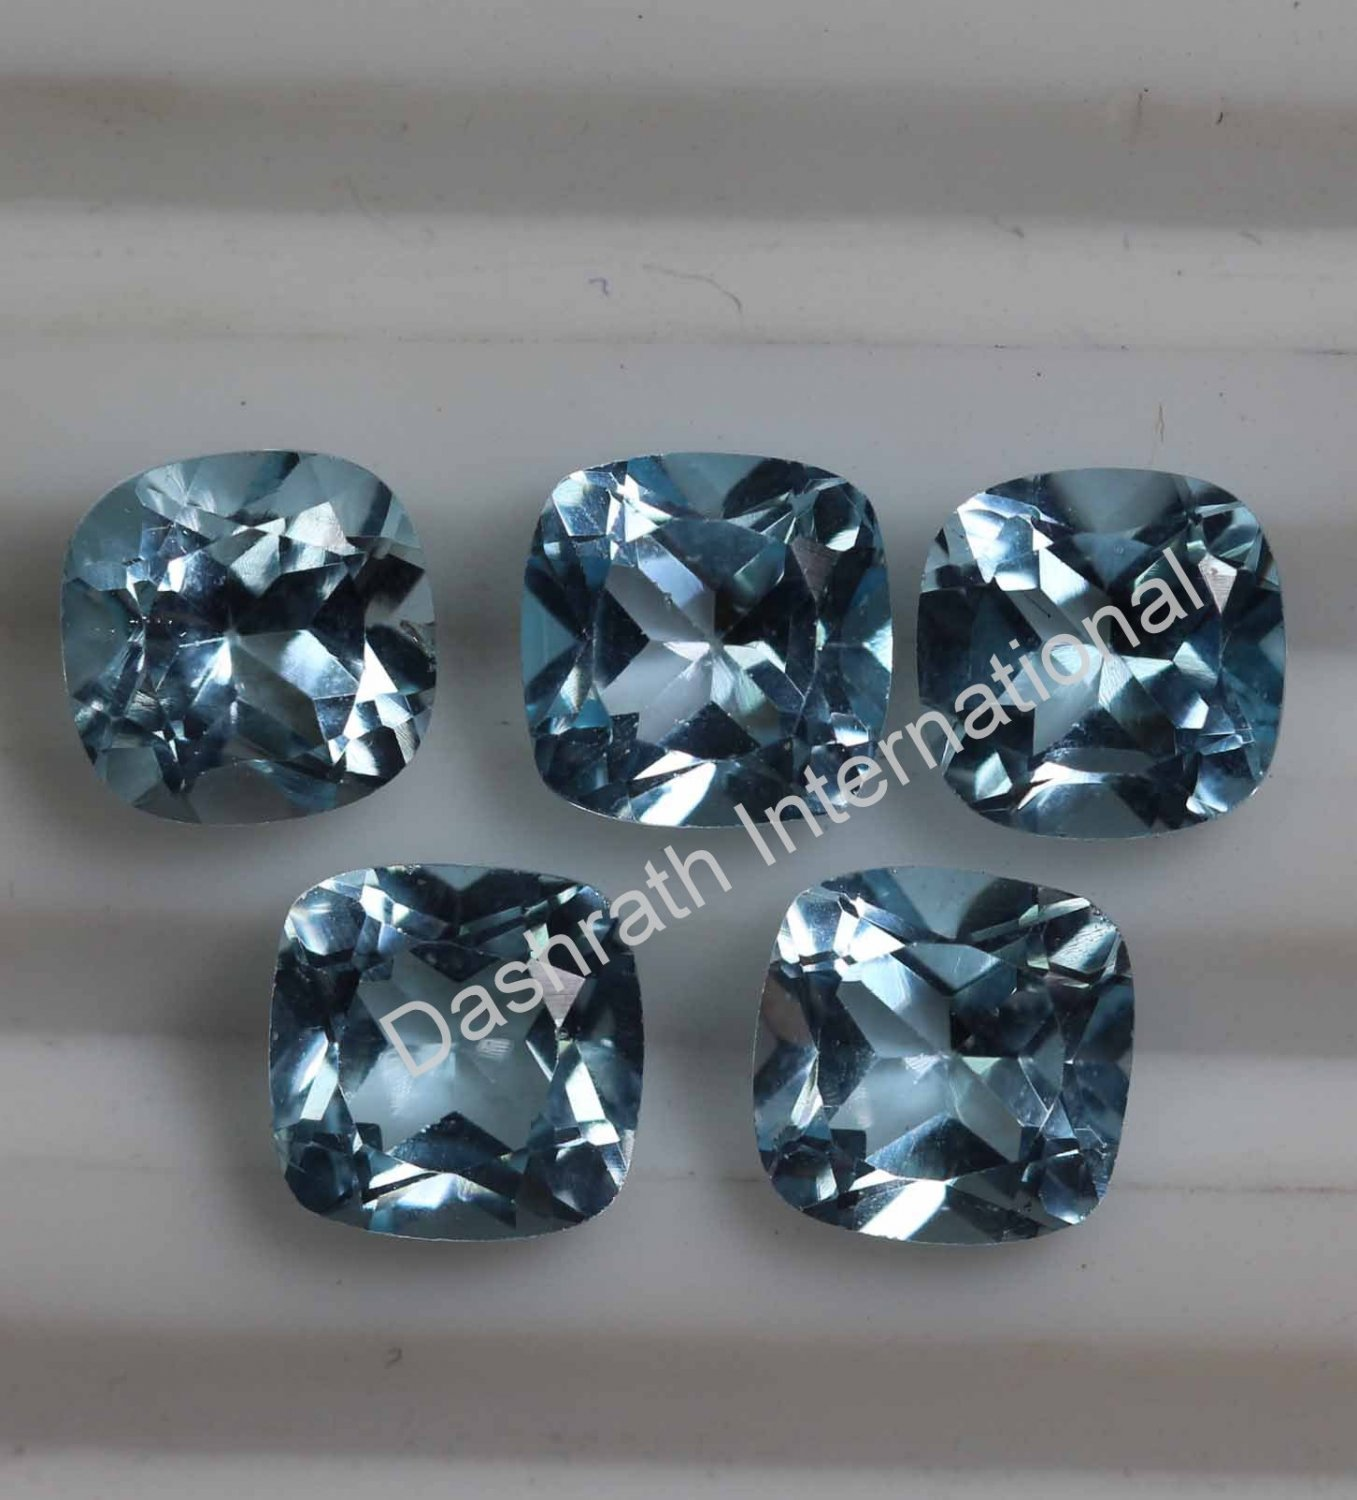 5mm Natural Sky Blue Topaz Faceted Cut Cushion 100 Pieces Lot Top Quality Loose Gemstone